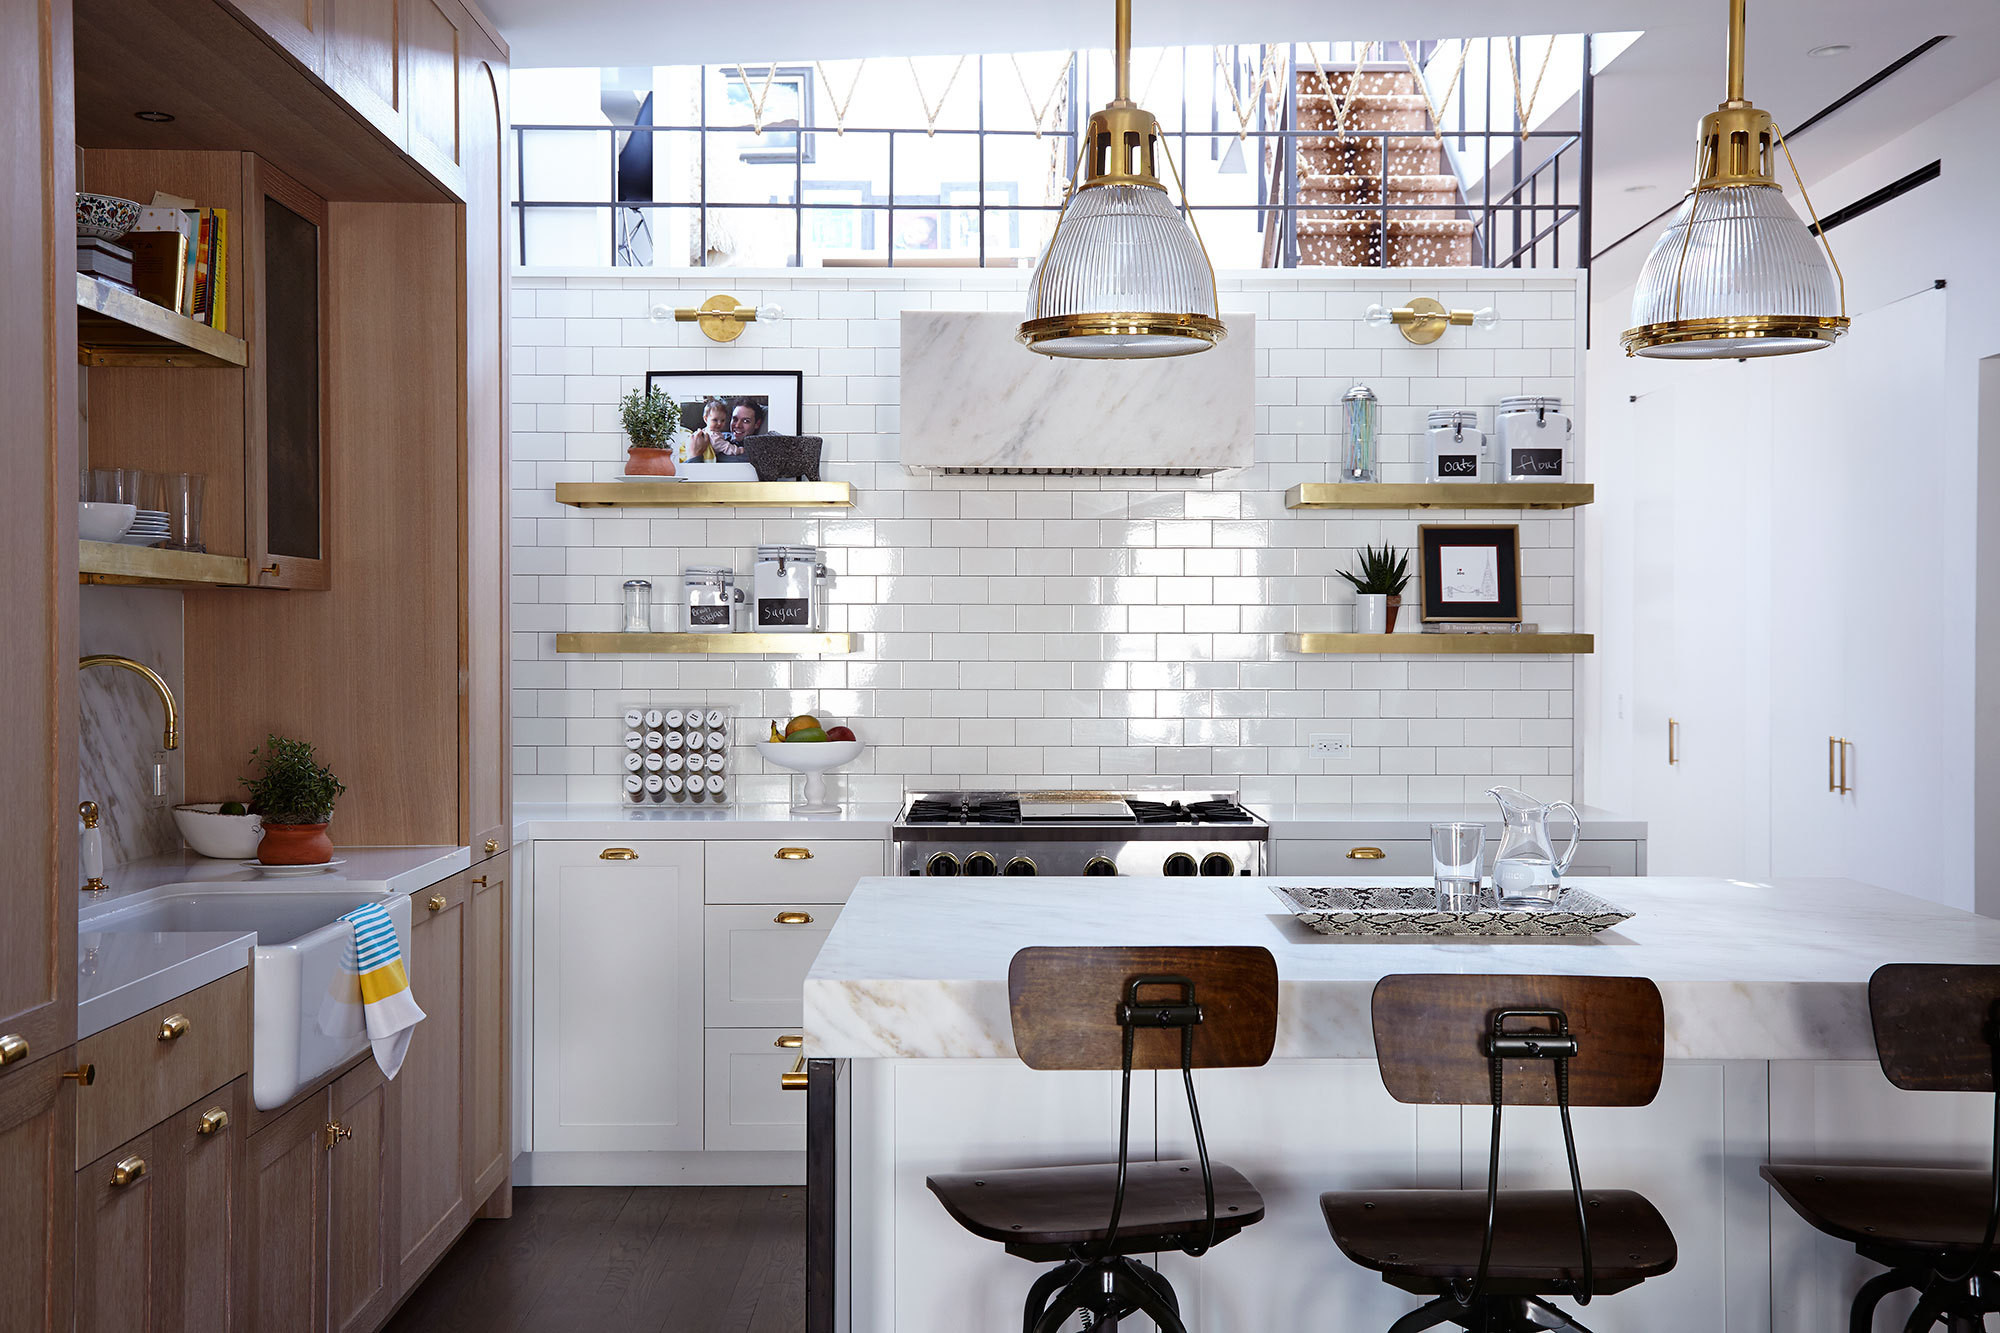 The custom kitchen by Studio DB in a Tribeca, New York City, loft, which was designed by Jenny Vorhoff.